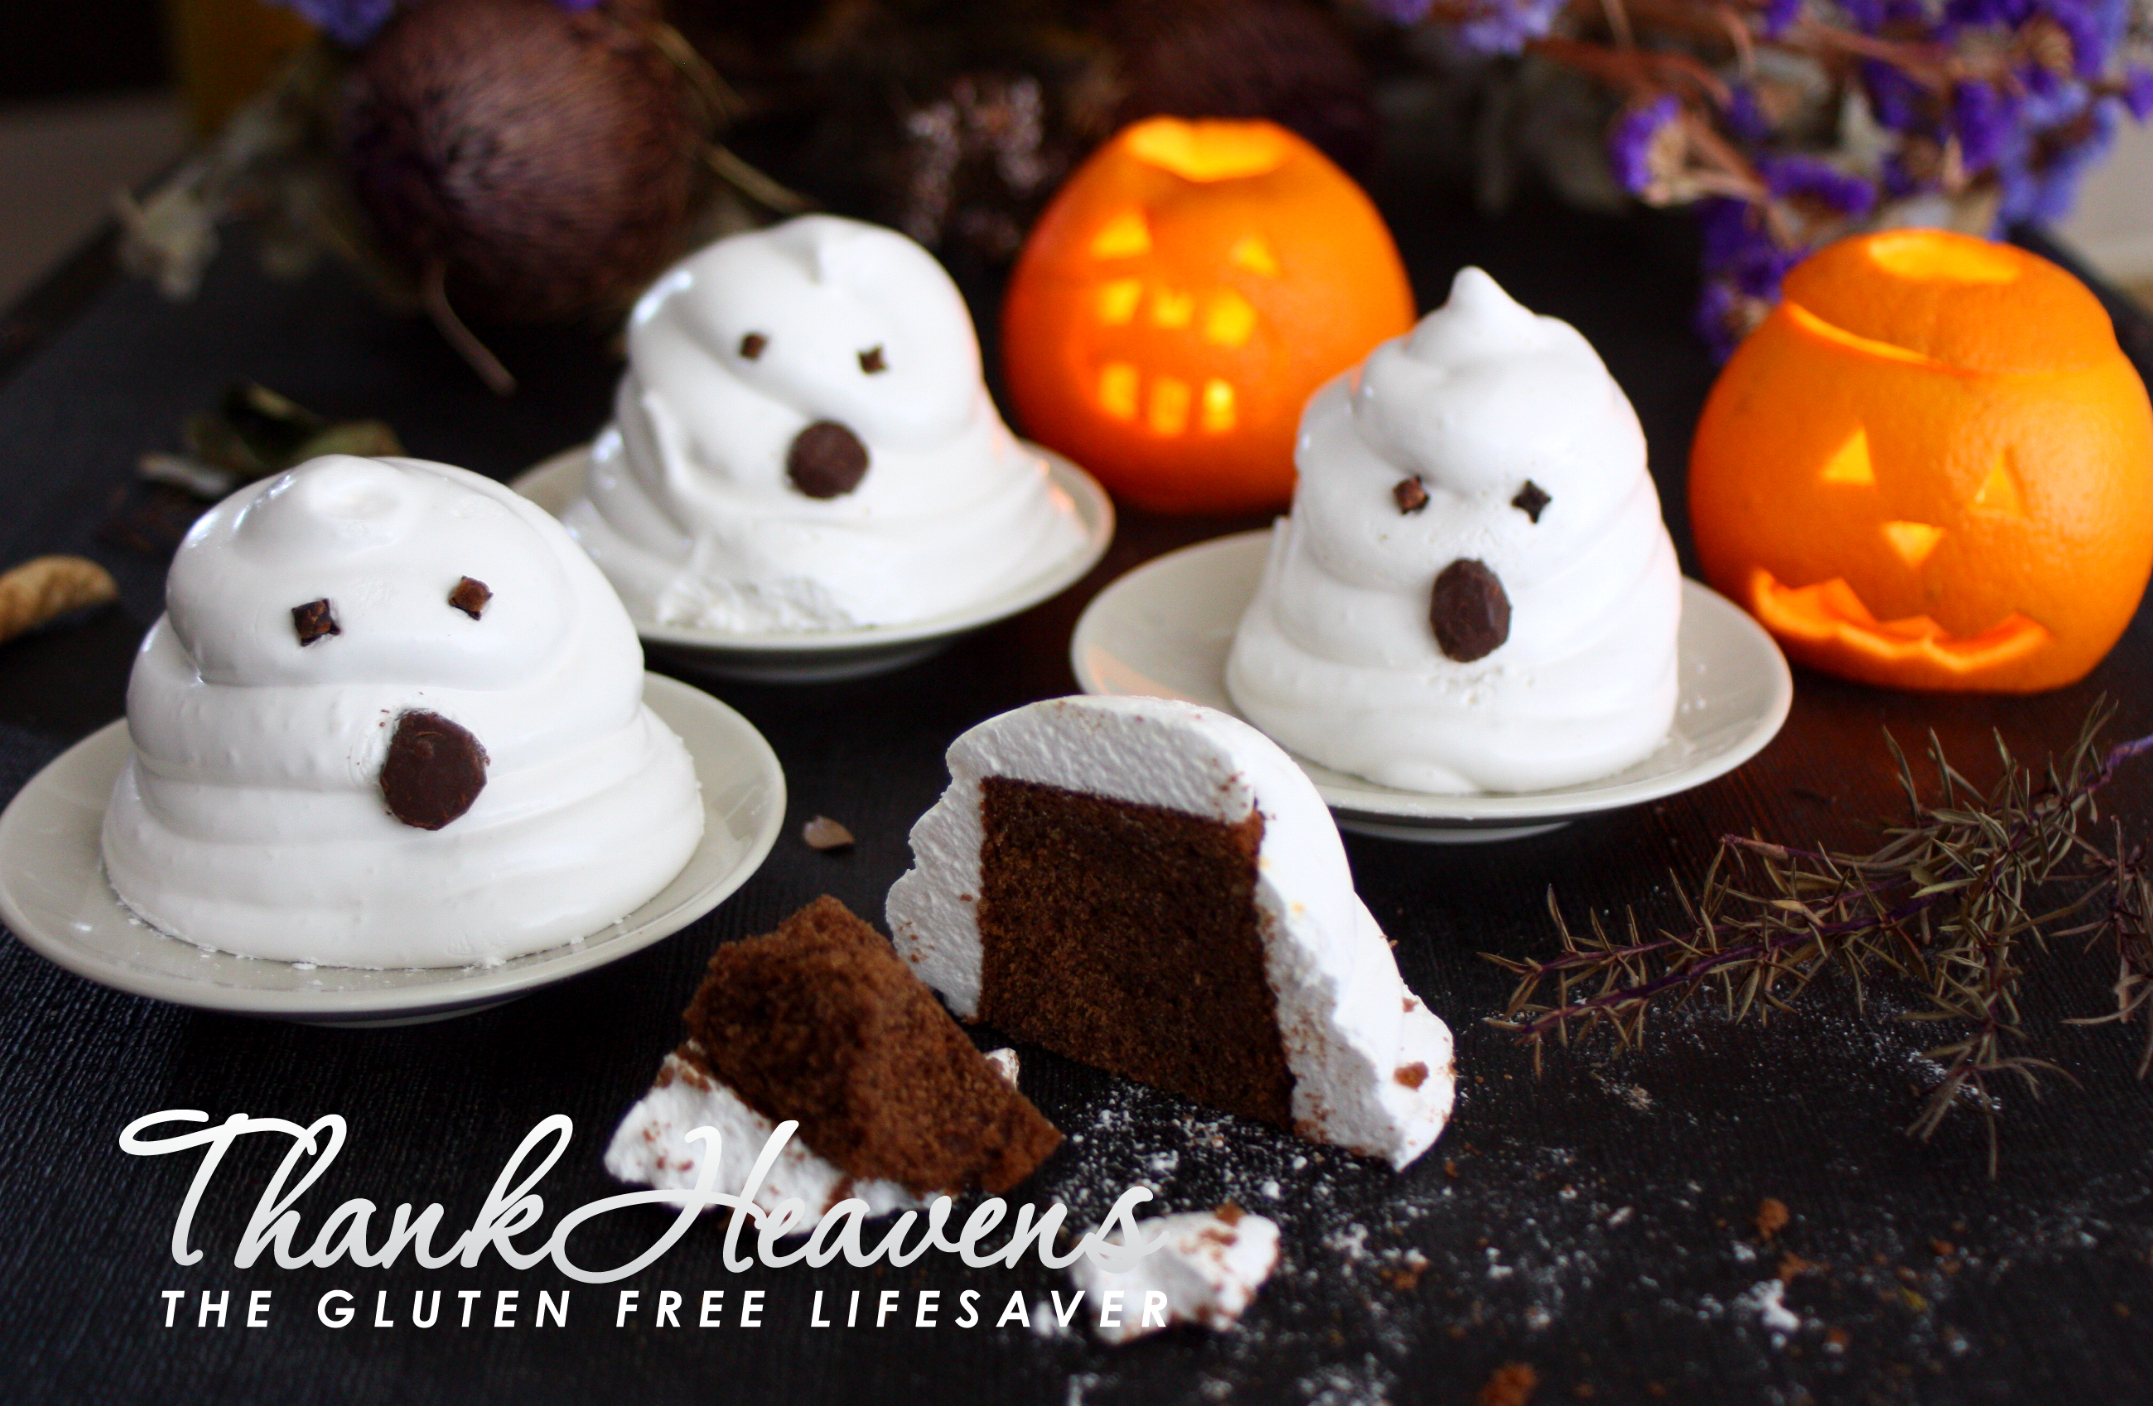 Spooky Chocolate Muffin Marshmallow Halloween Ghosts (Gluten-Free, Dairy-Free, Failsafe, low-FODMAP)